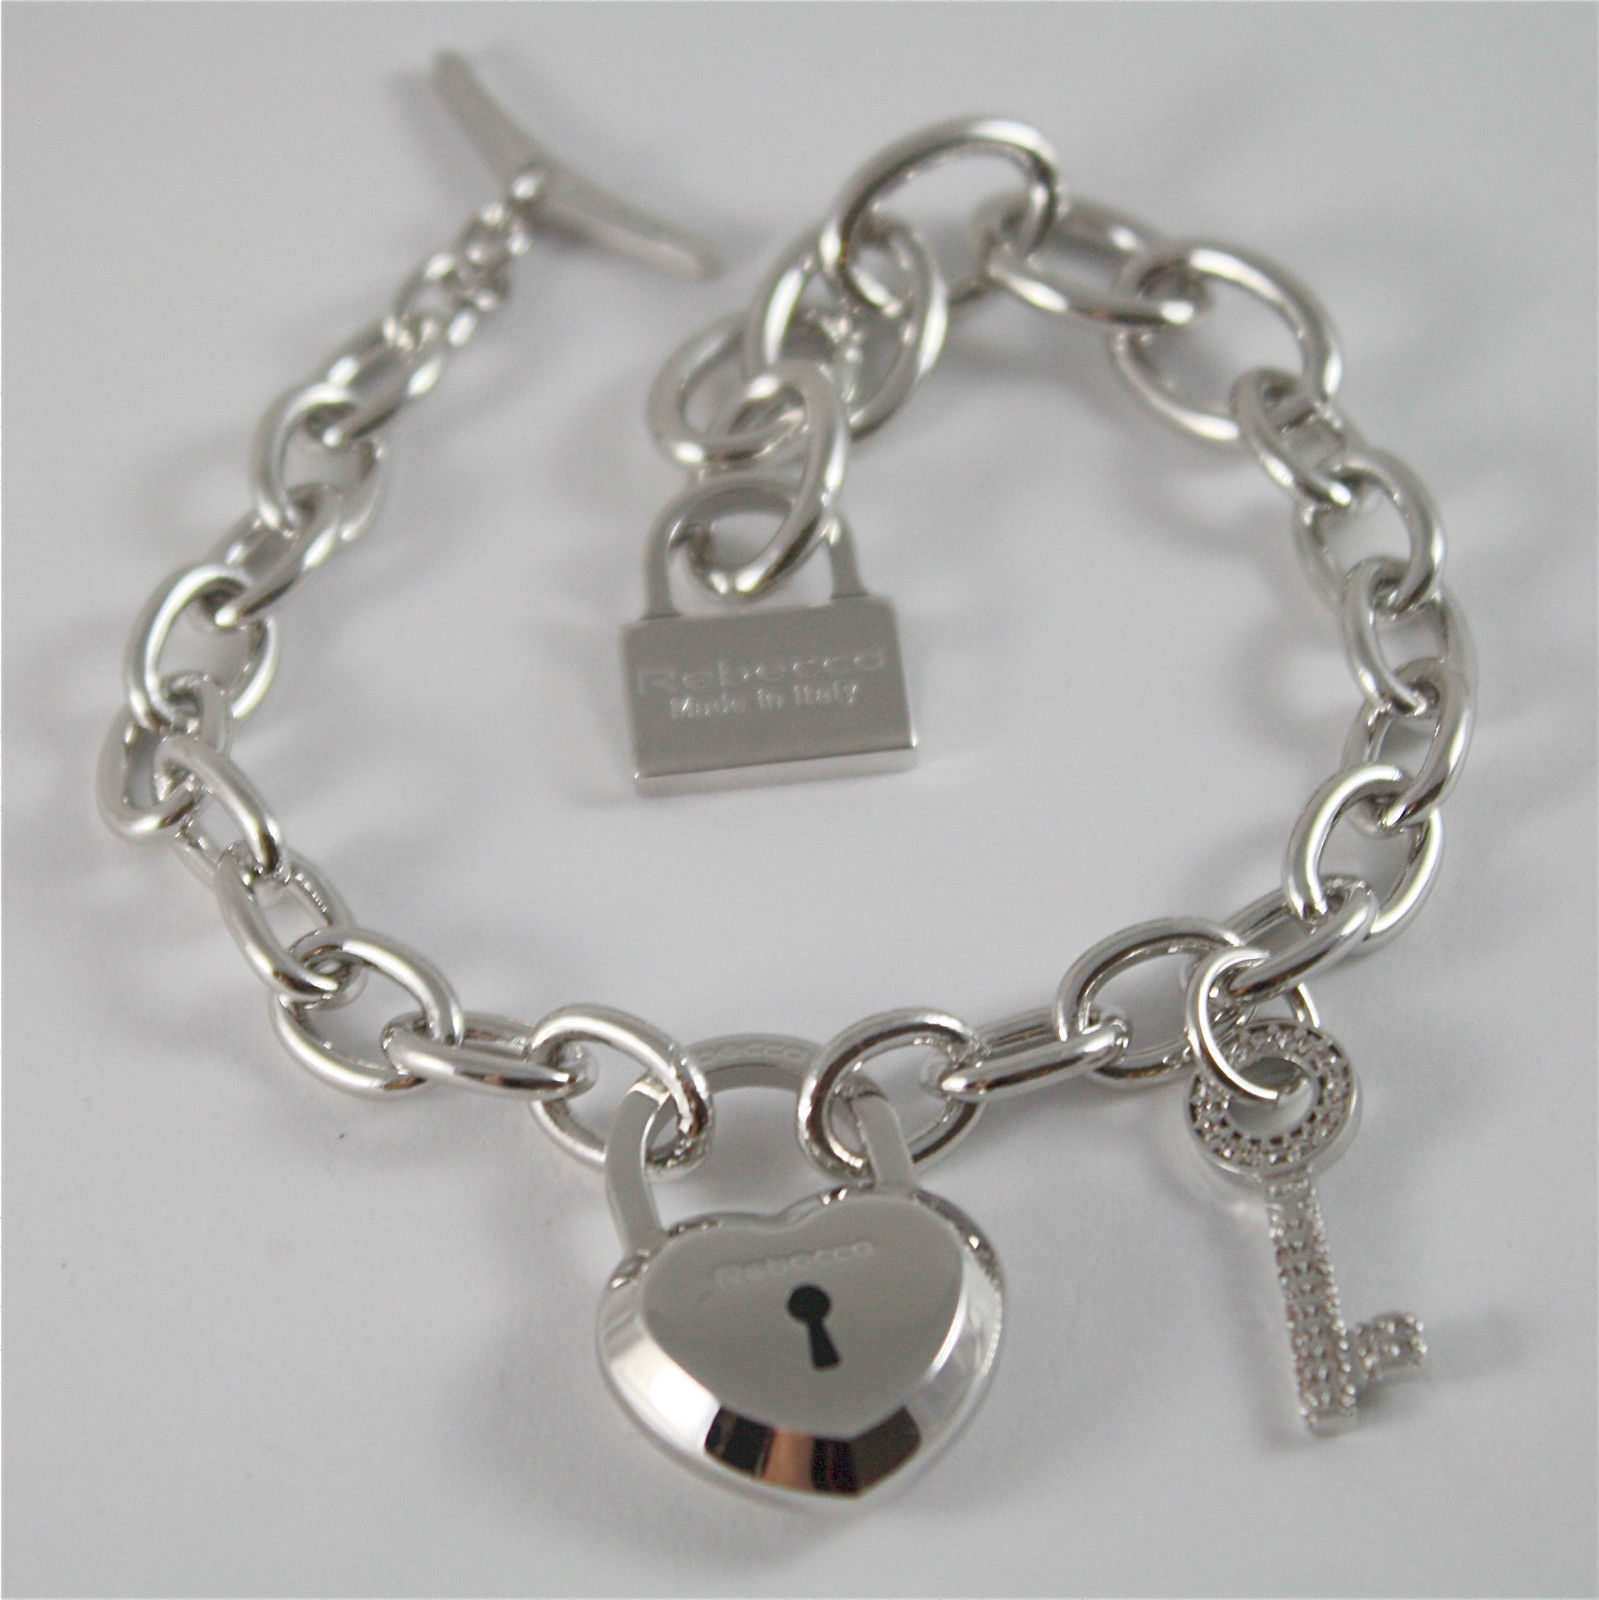 WHITE GOLD PLATED BRONZE REBECCA BRACELET LOVE LOCK BLLBBB05 MADE IN ITALY 7.87